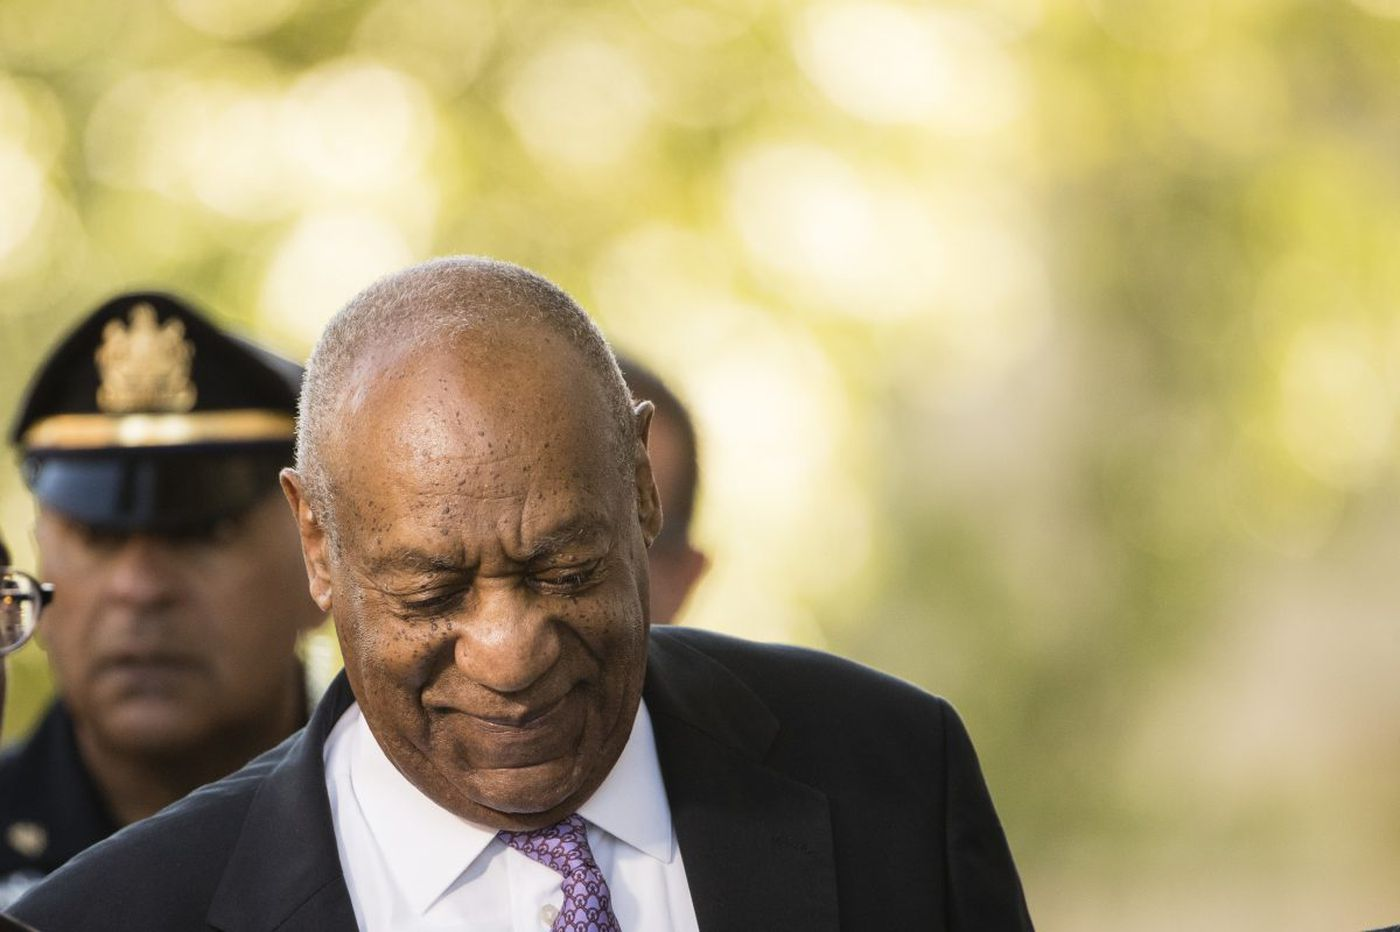 Controversial Cosby column: Christine Flowers' editor speaks